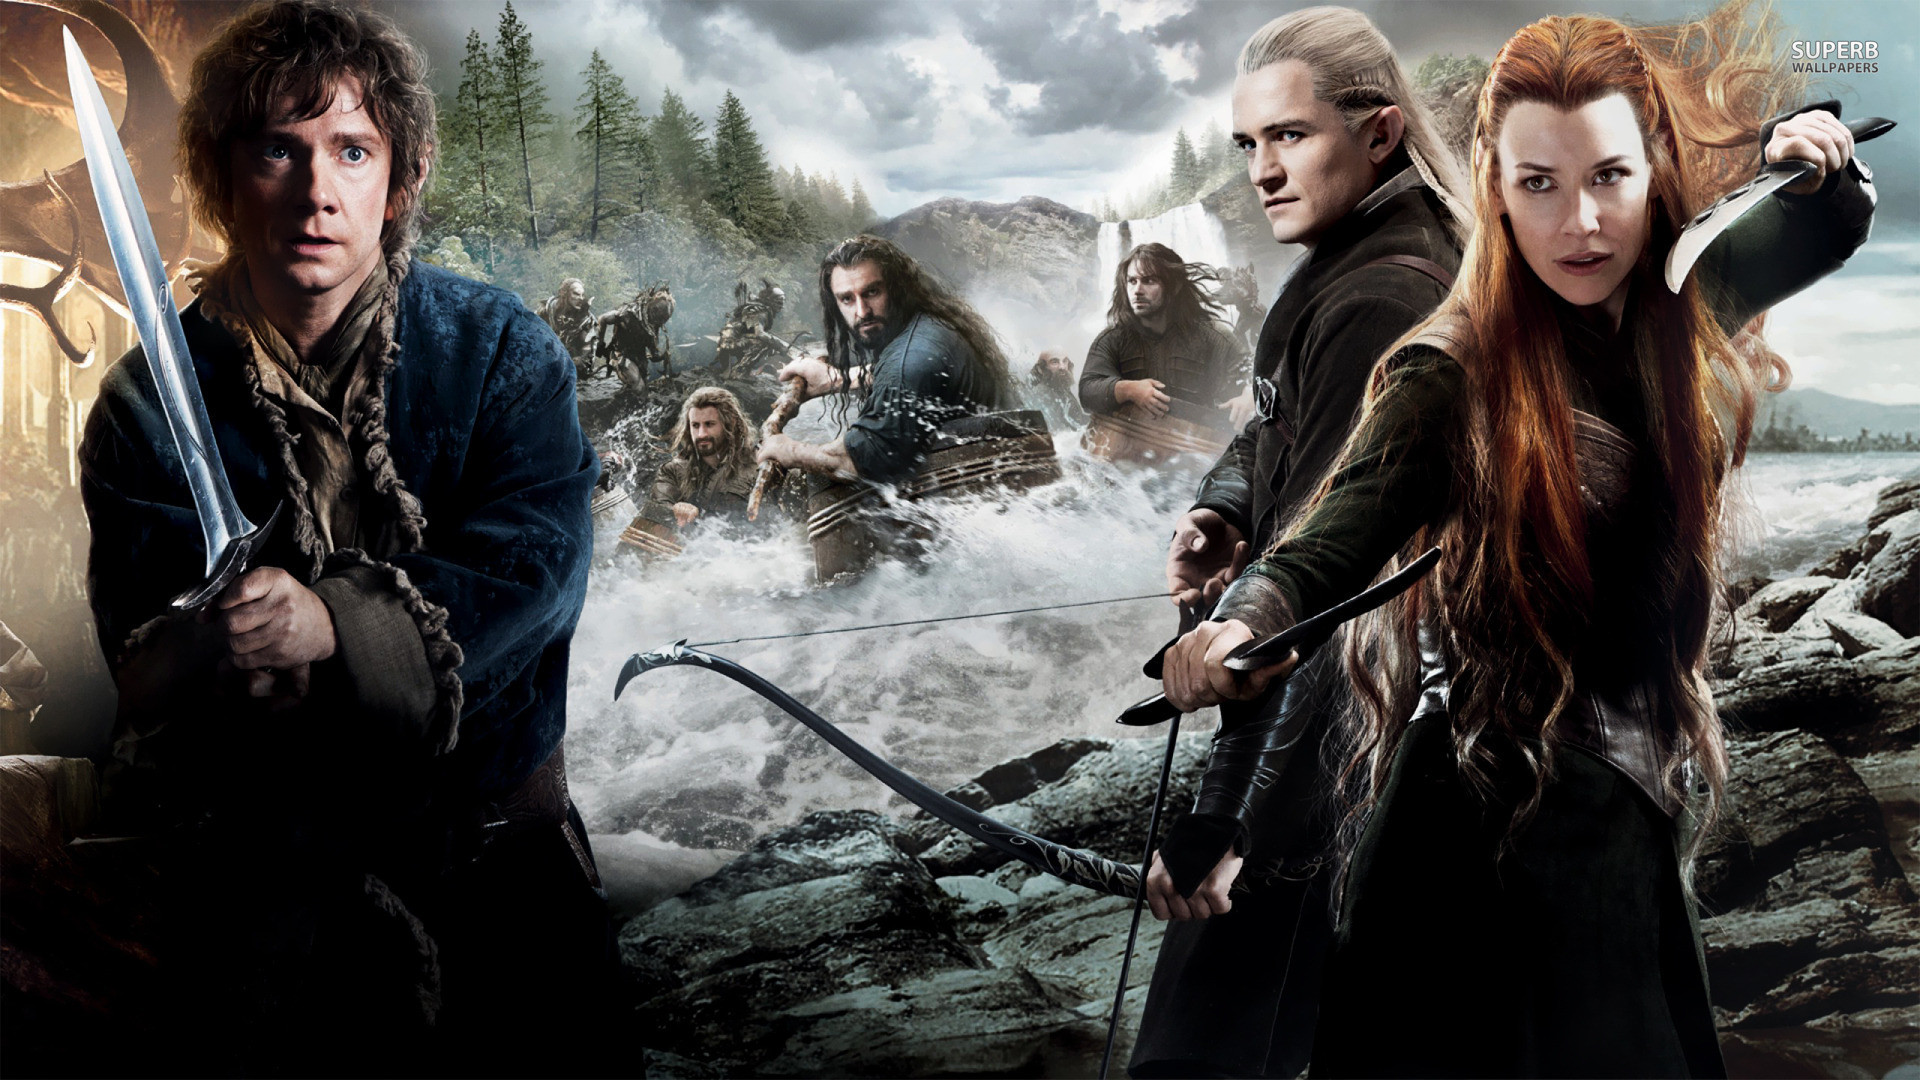 The Hobbit Picture HD.